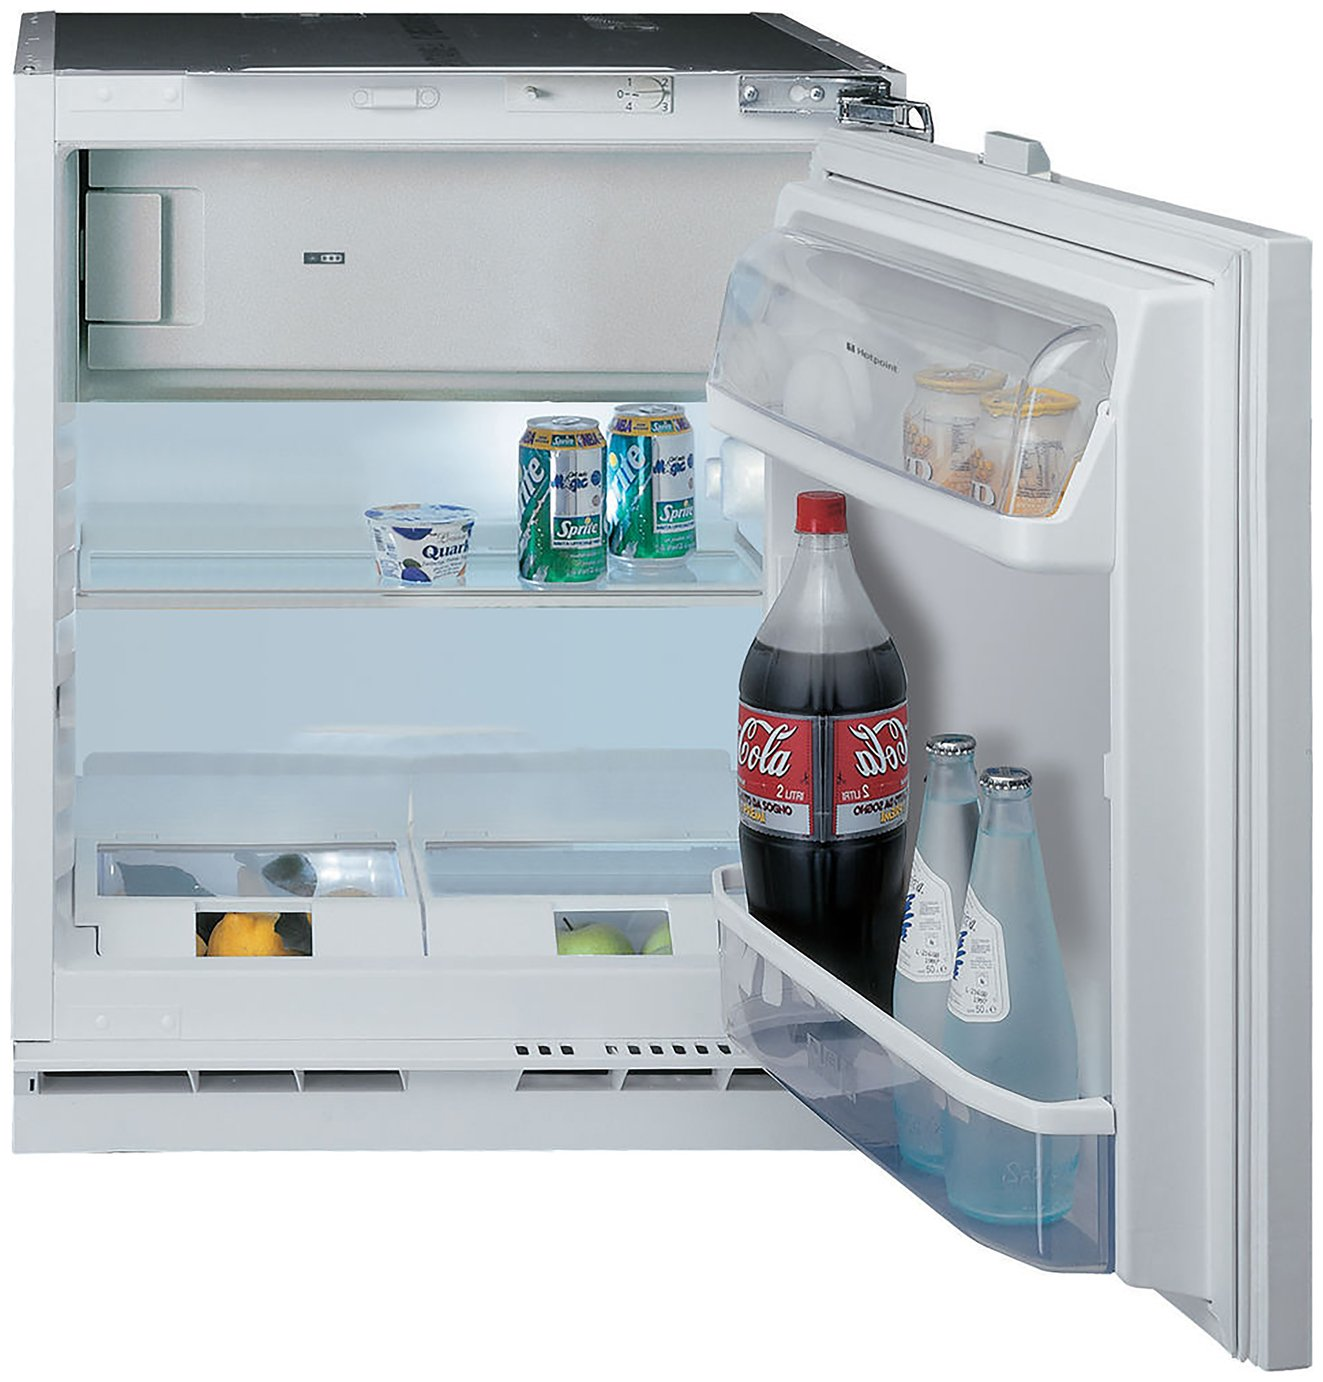 Hotpoint HF A1 Built-In Fridge - White. from Hotpoint